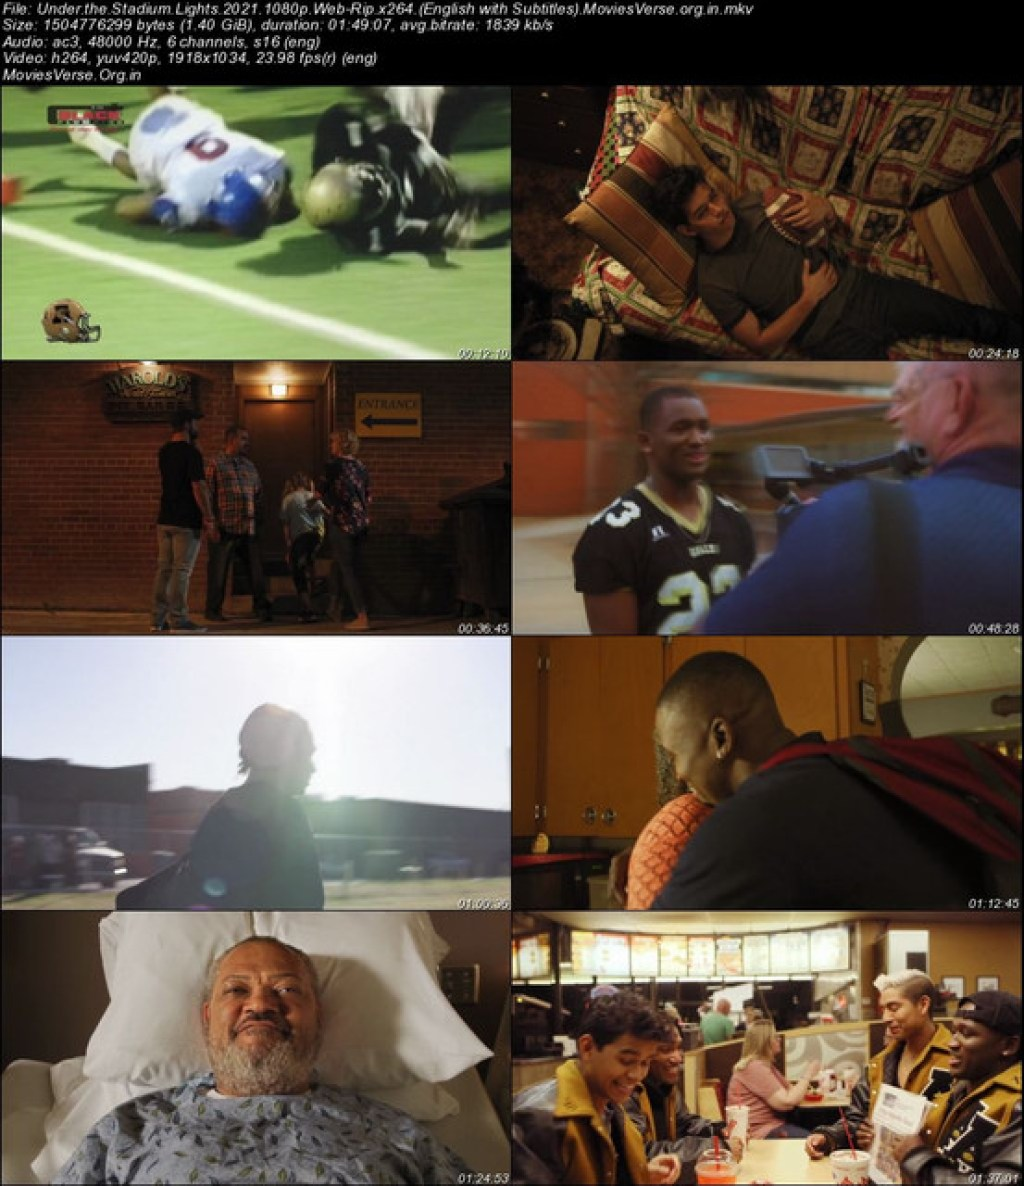 Under-the-Stadium-Lights-2021-1080p-Web-Rip-x264-English-with-Subtitles-Movies-Verse-org-in